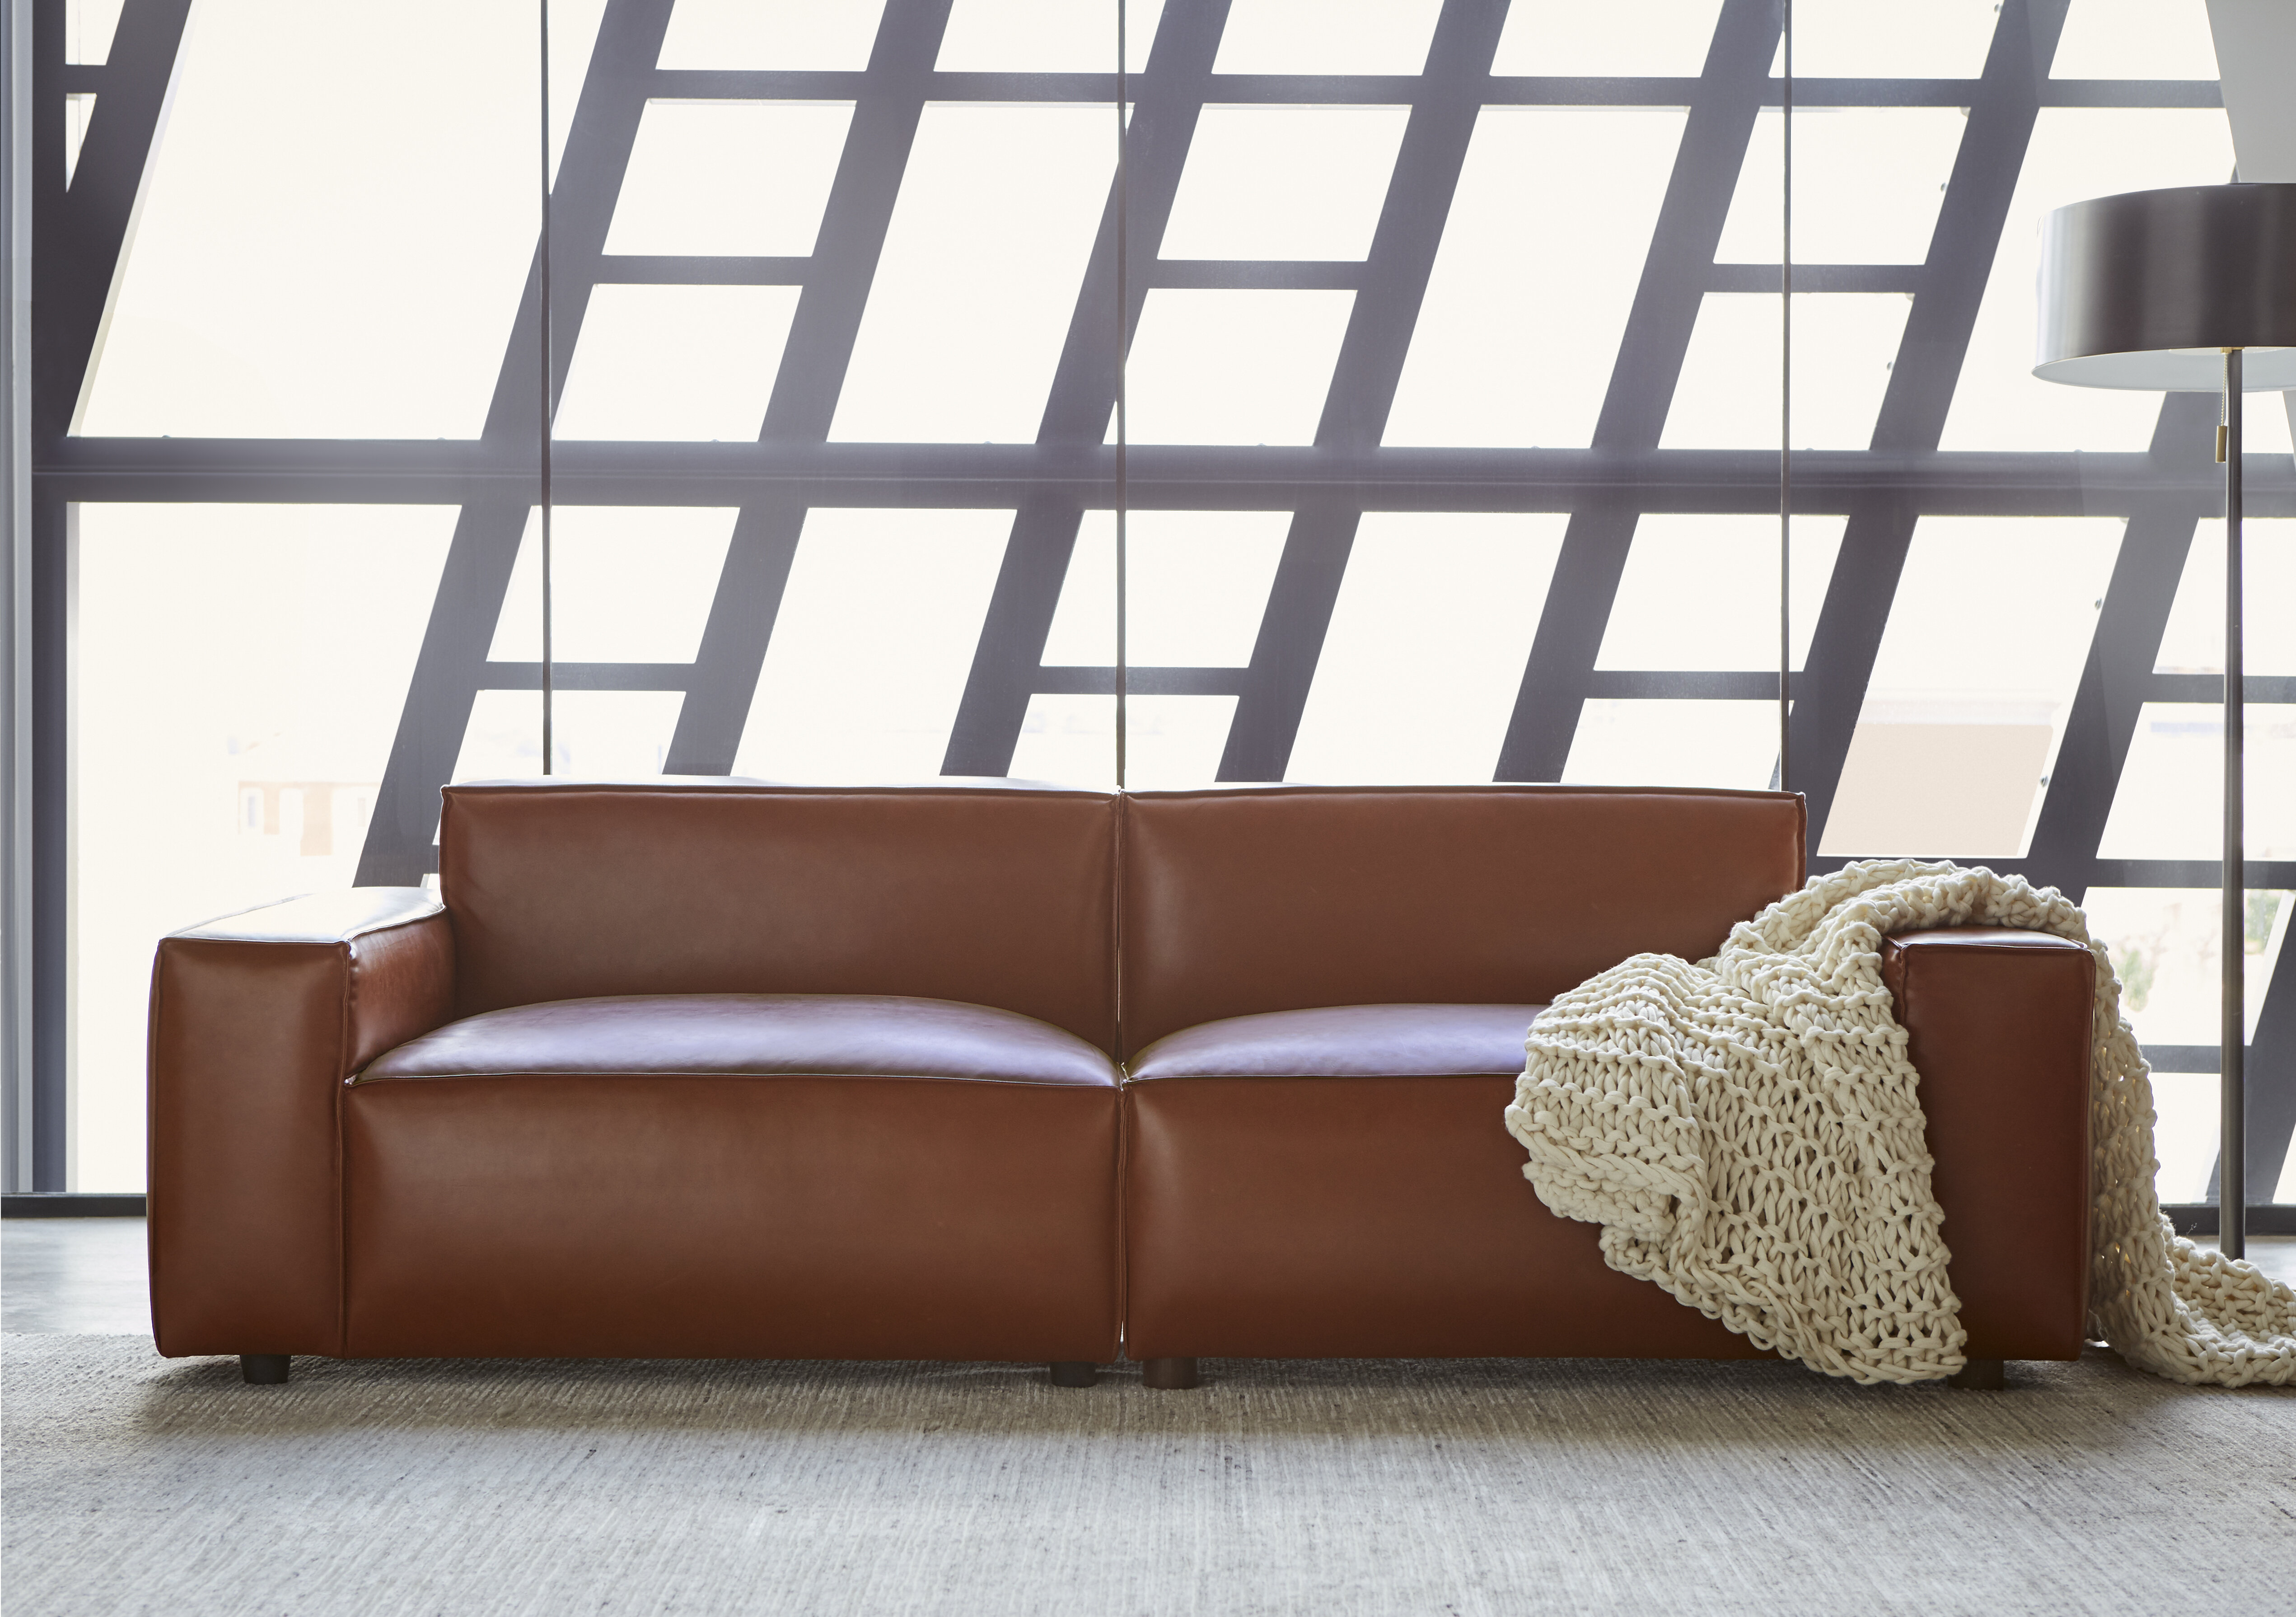 Bobby Berk Upholstered Olafur 2 Piece Modular Sofa Sectional By A.R.T.  Furniture in , Brown